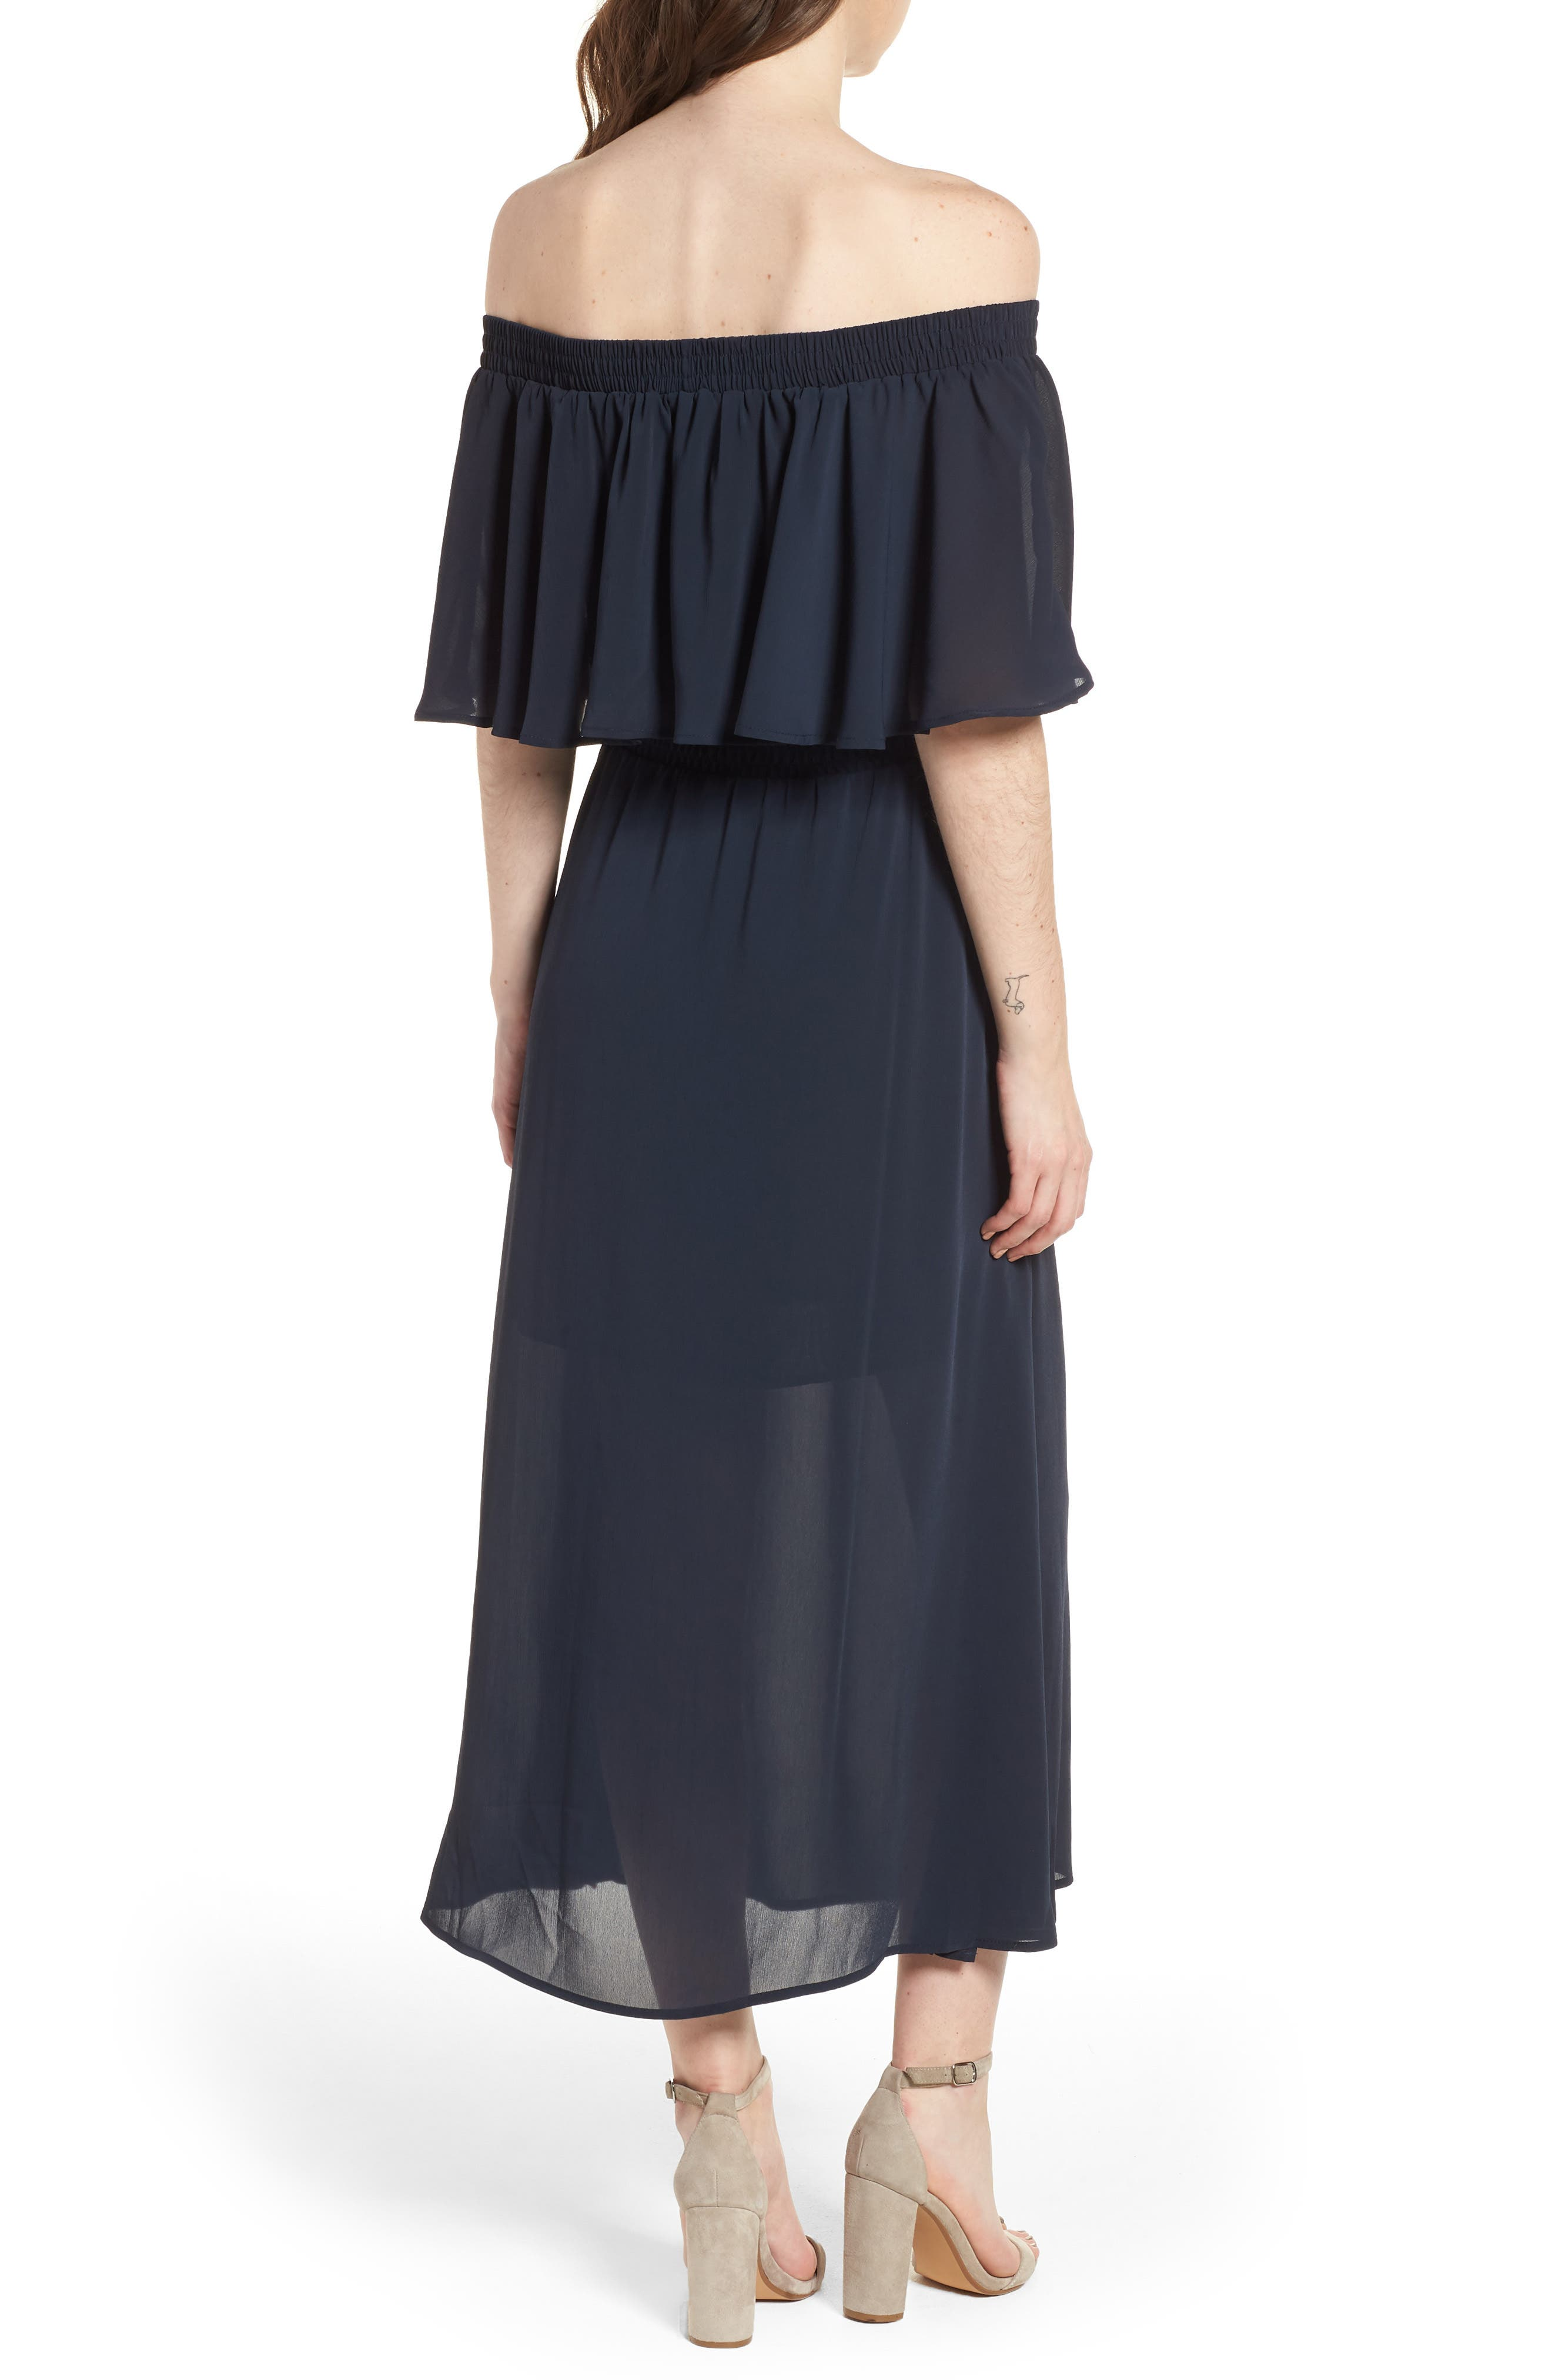 Touch the Sun Off the Shoulder Dress,                             Alternate thumbnail 3, color,